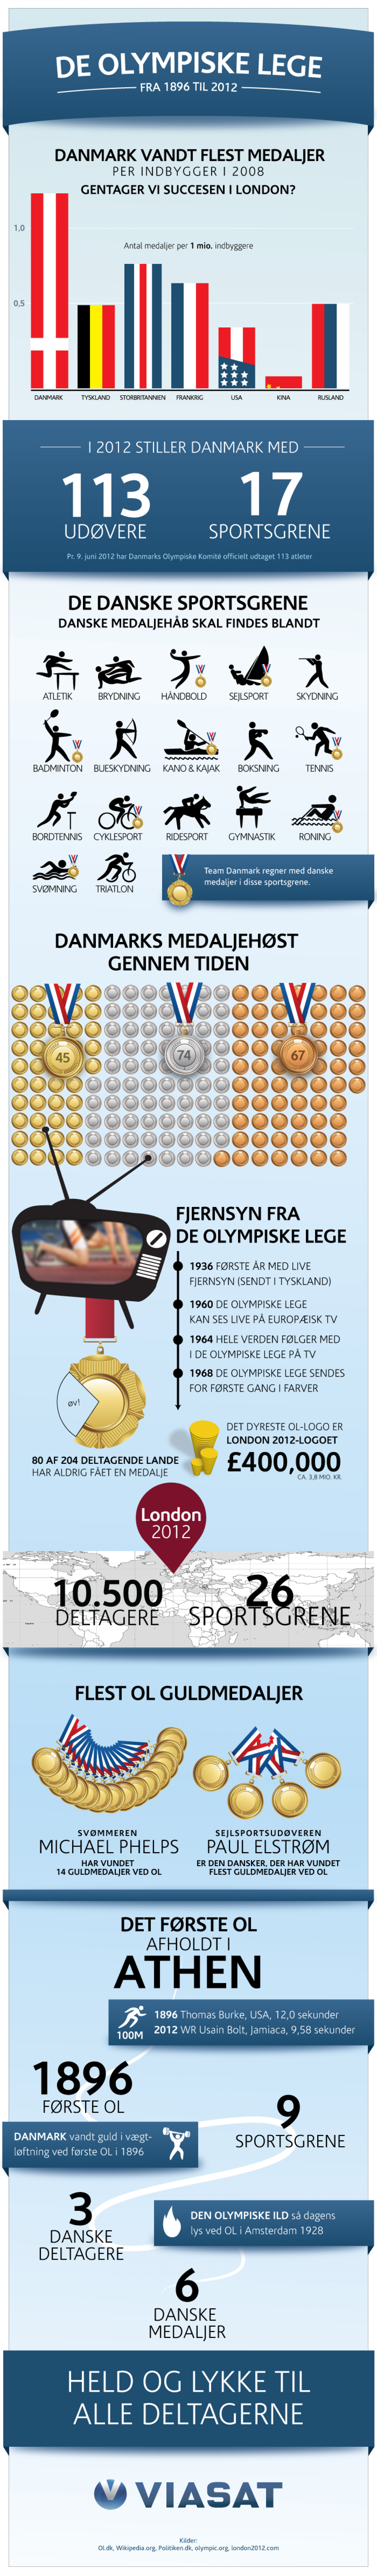 Denmark will win most medals at the Olympics by population  Infographic